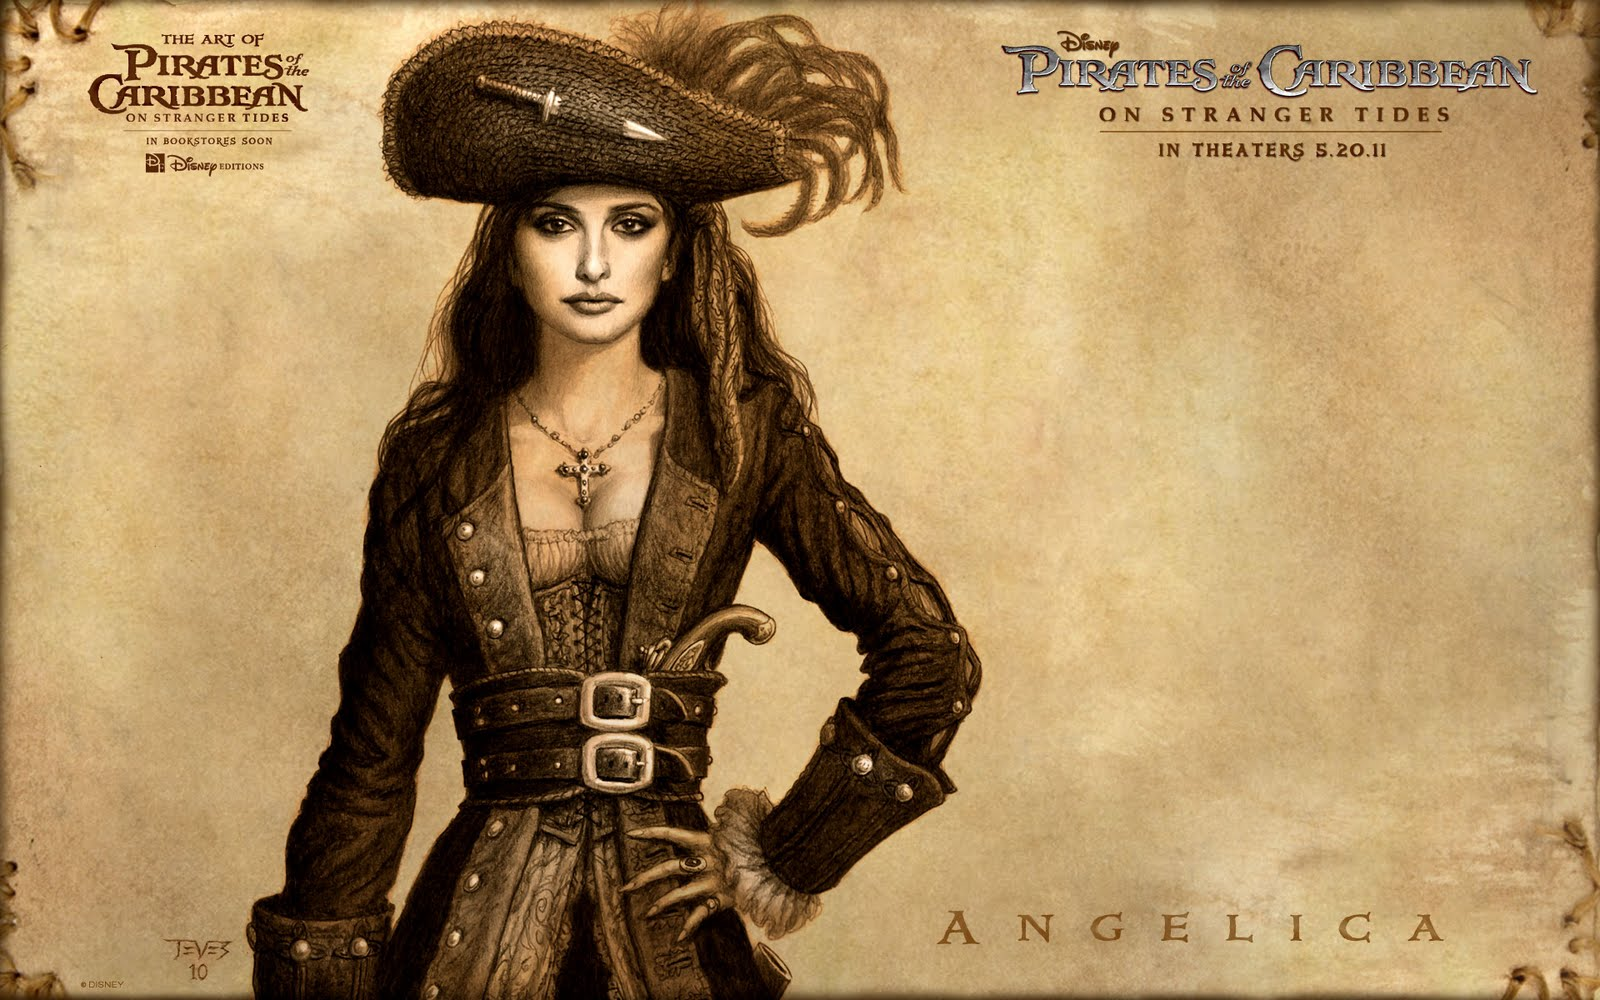 http://4.bp.blogspot.com/-aOgcEoIh6lY/TdTzDXvQUoI/AAAAAAAAECo/RY-3-o5Xse4/s1600/Pirates-of-The-Caribbean-On-Stranger-Tides-Wallpapers-5.jpg